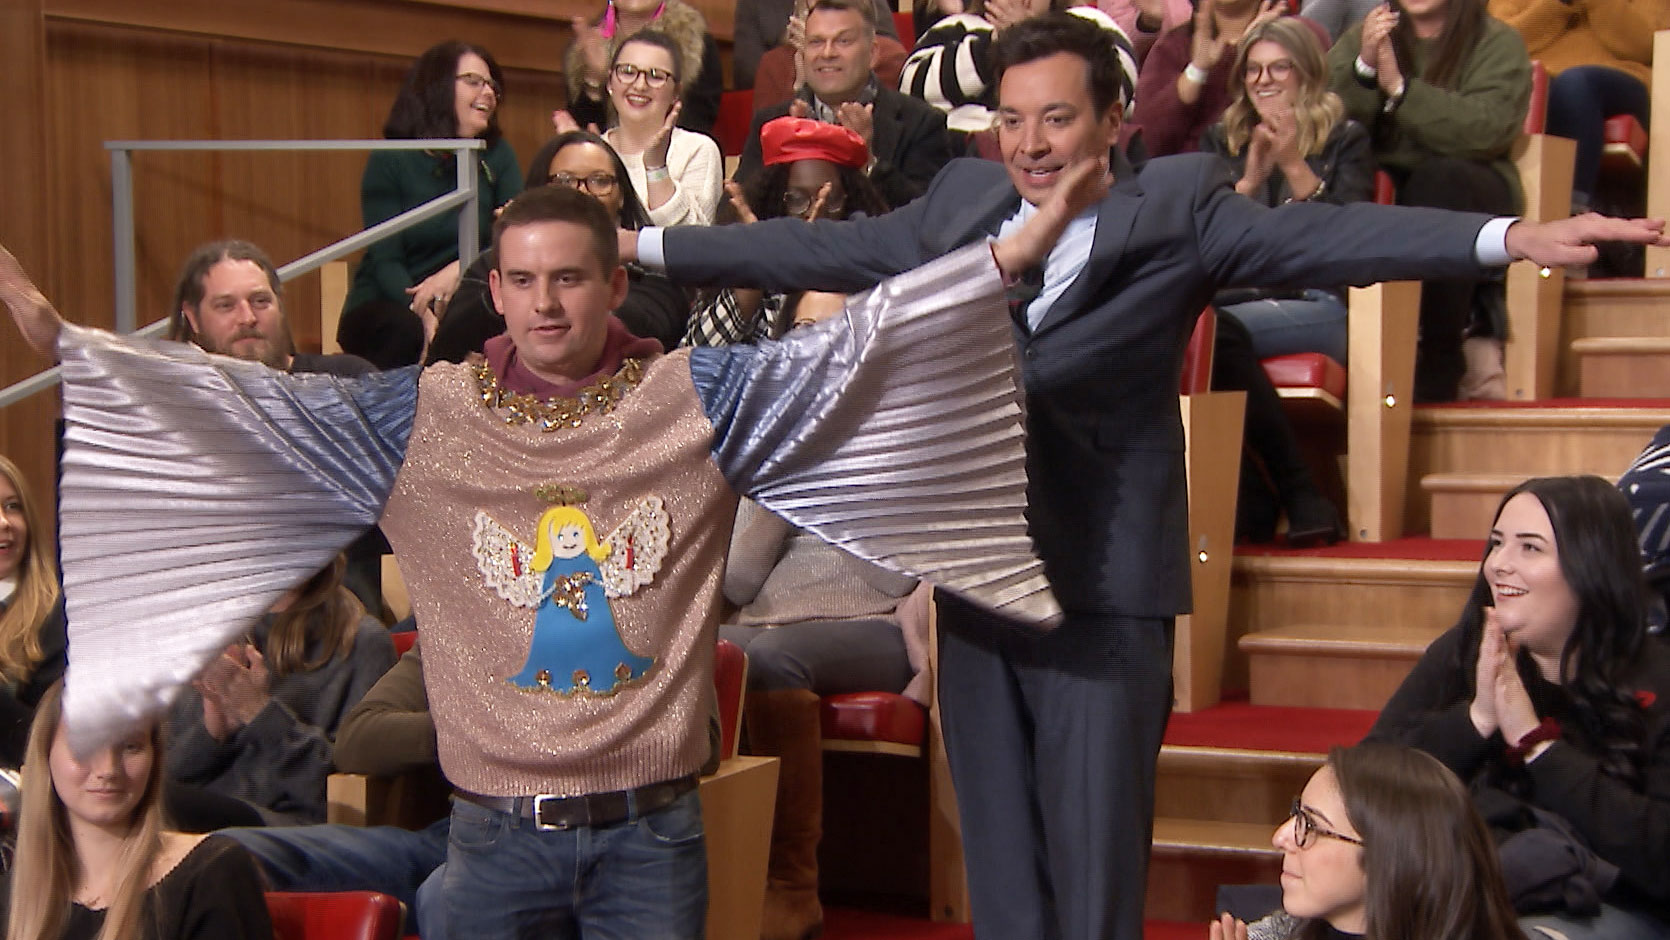 Jimmy Fallon Christmas Sweater 2020 Intern Watch The Tonight Show Starring Jimmy Fallon Highlight: 12 Days of